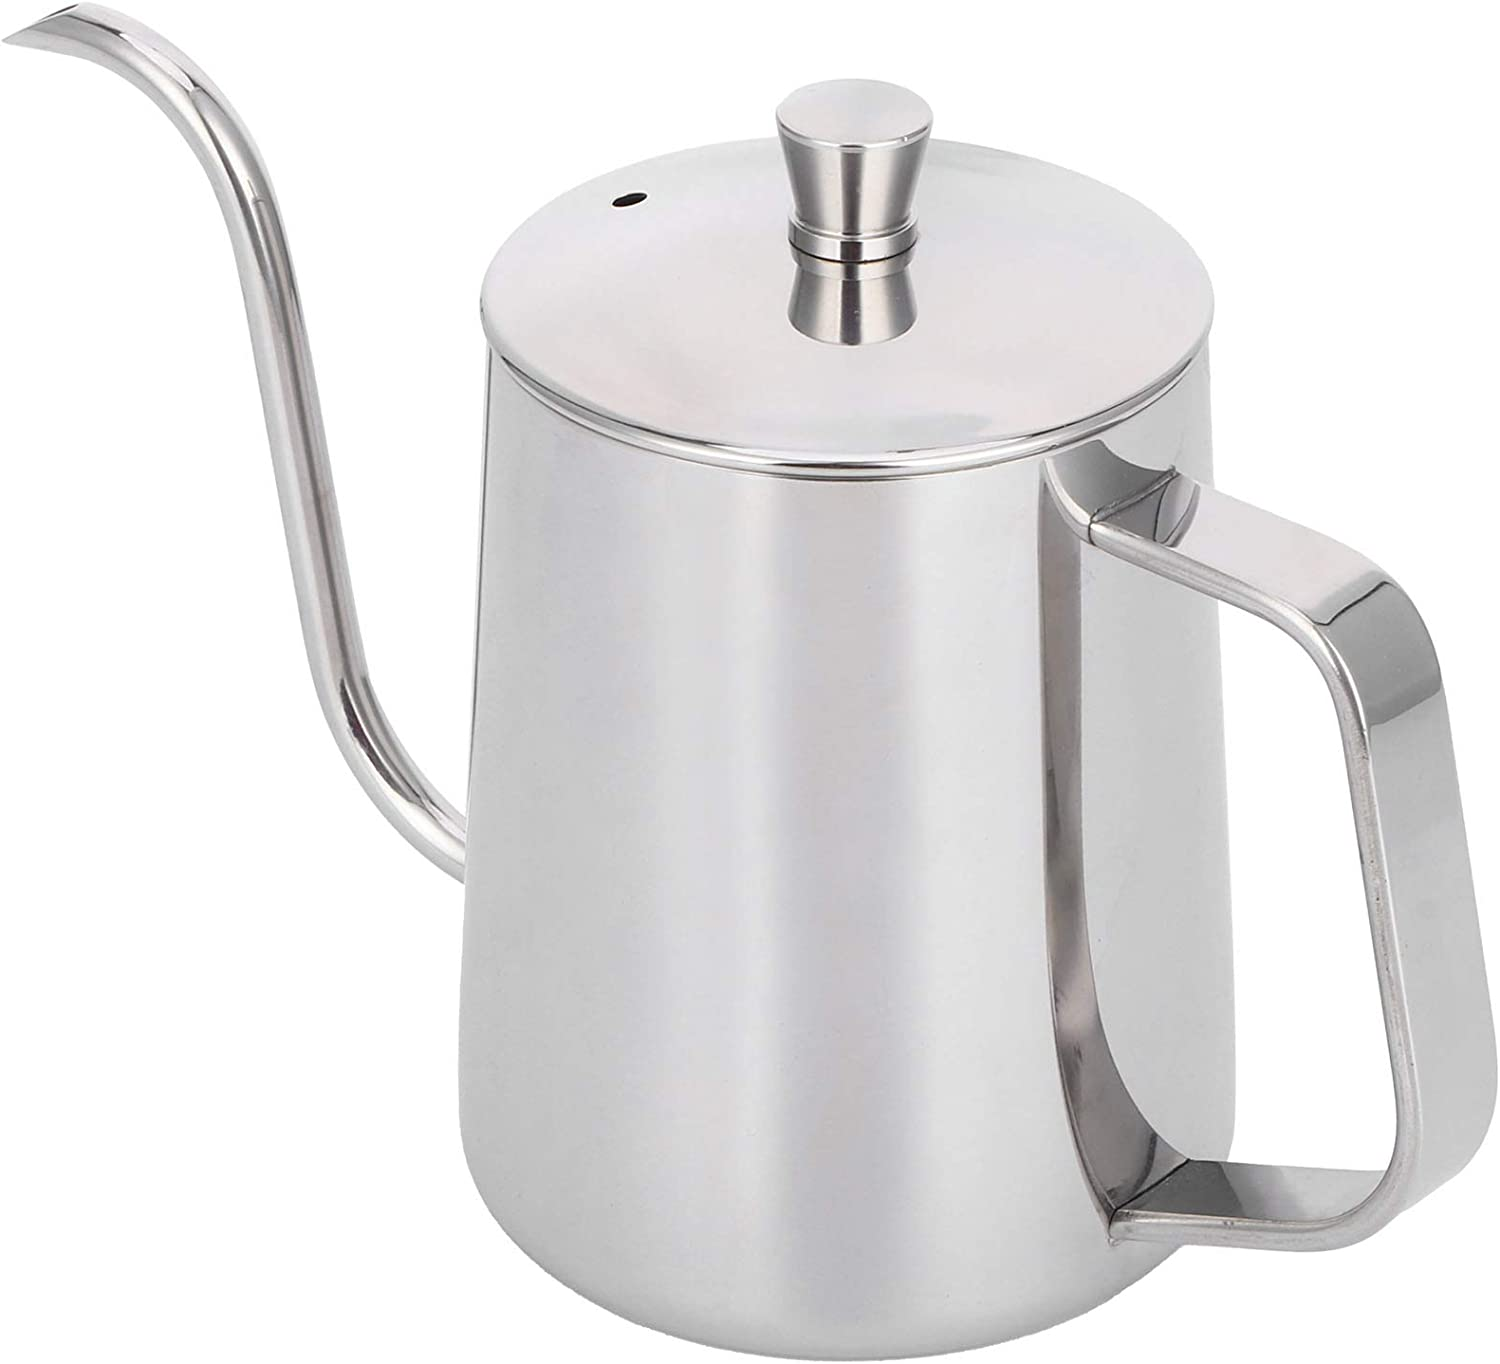 Coffee Drip Kettle 304 Stainless Hand Pour Steel Tucson Mall Ov Max 86% OFF